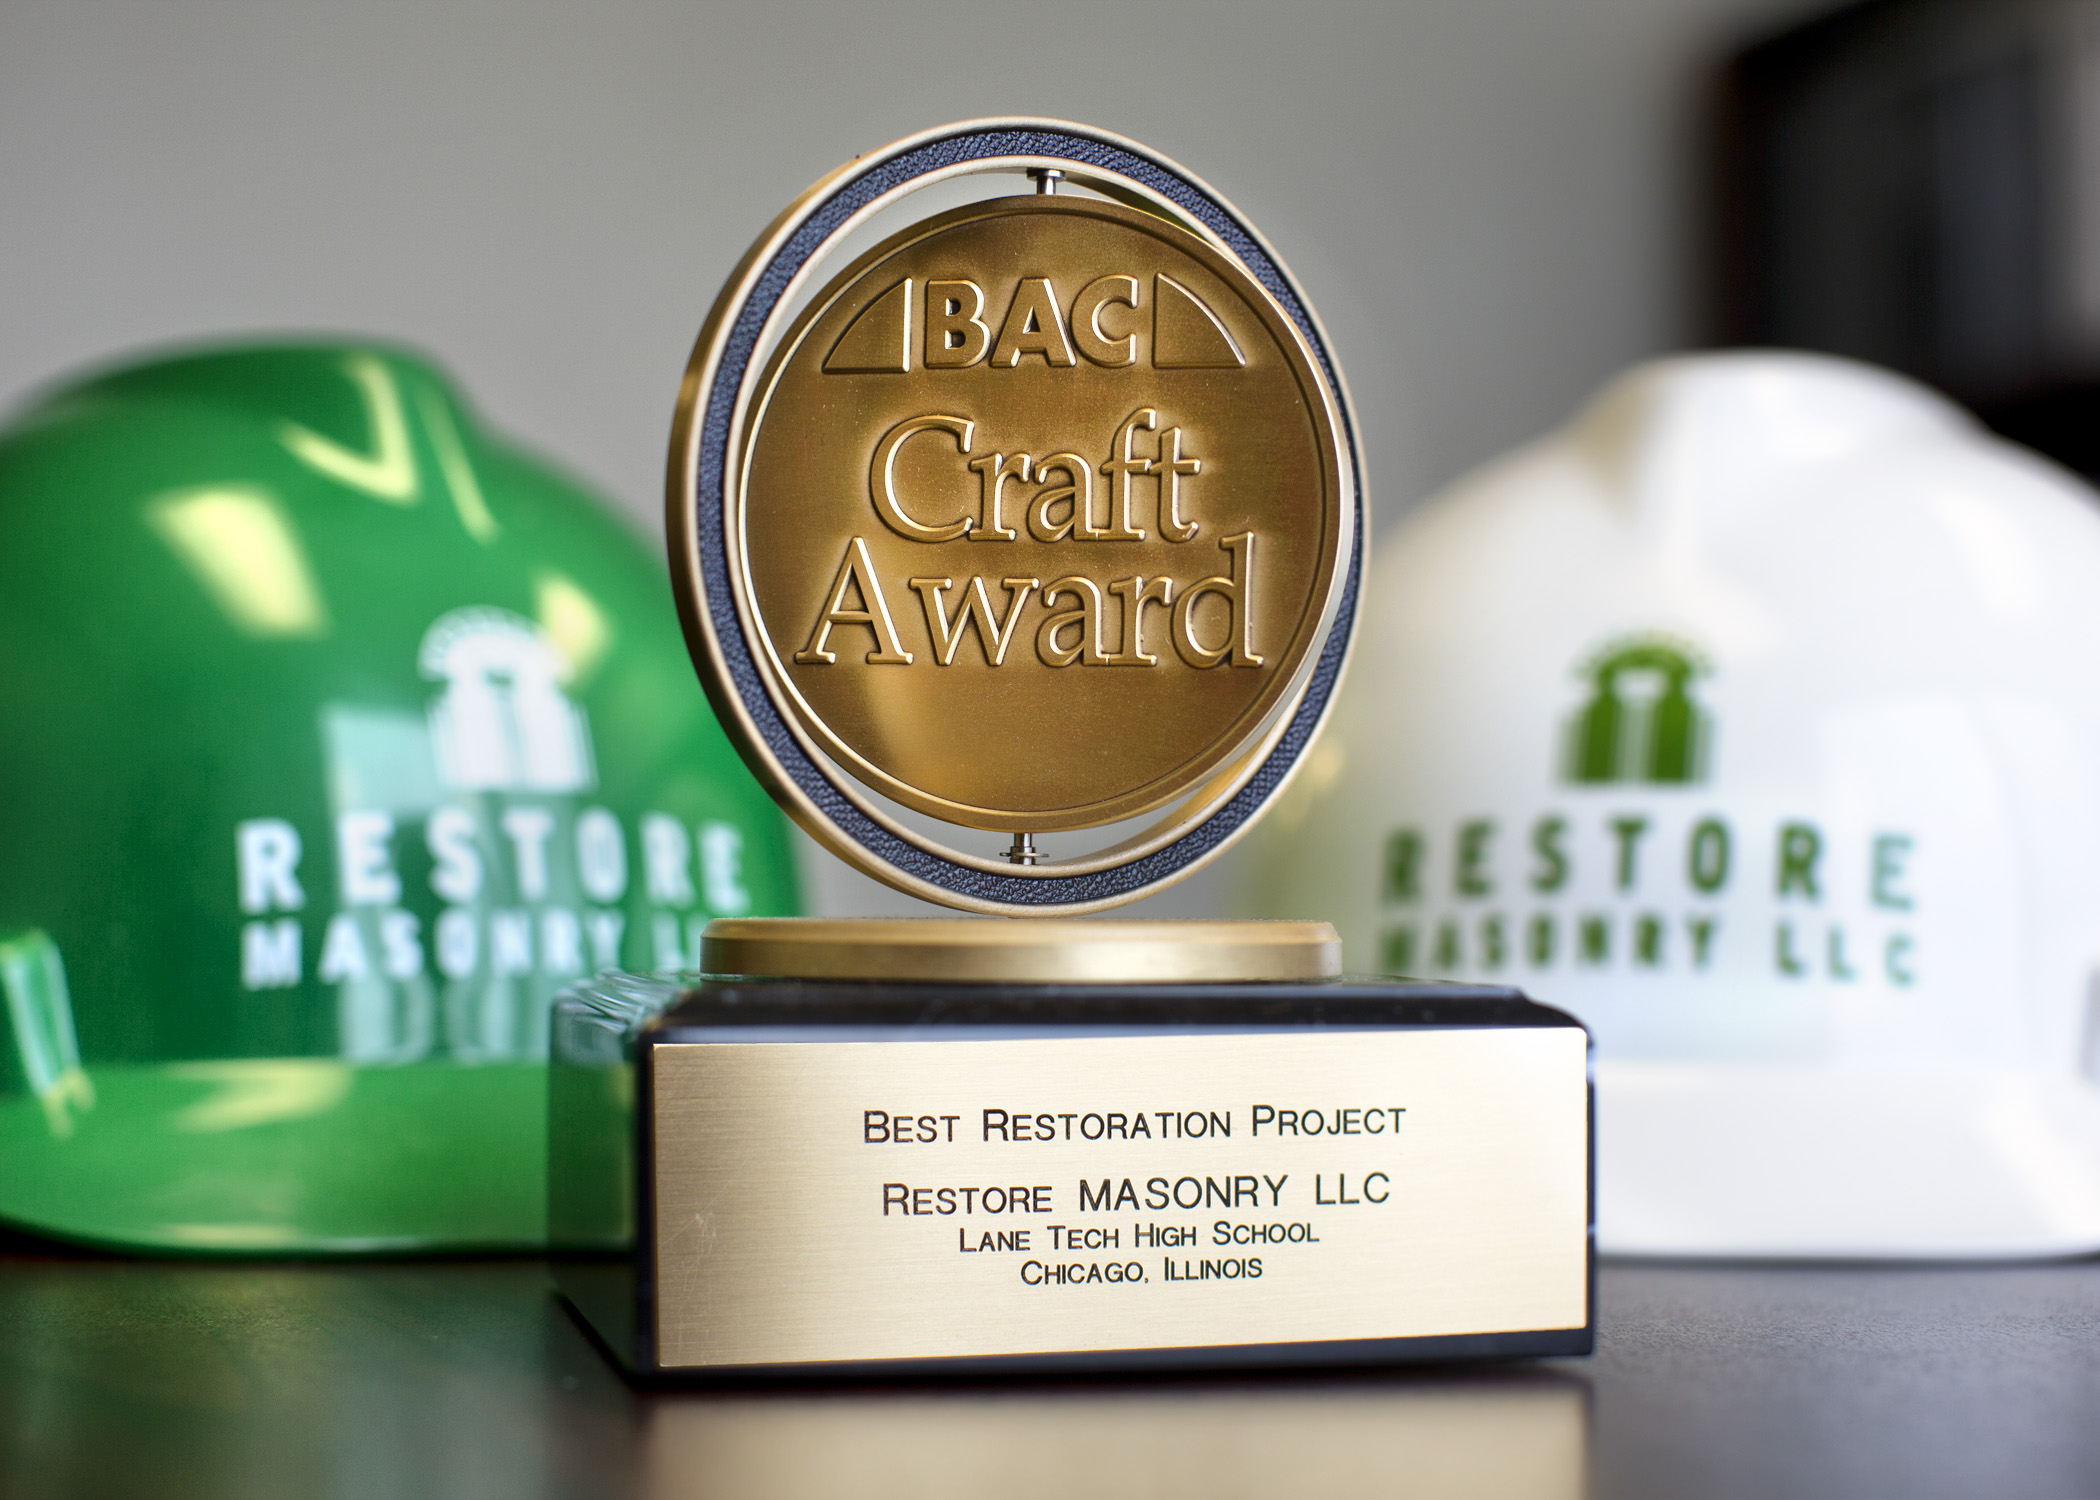 BAC Craft Award – Best Restoration Project